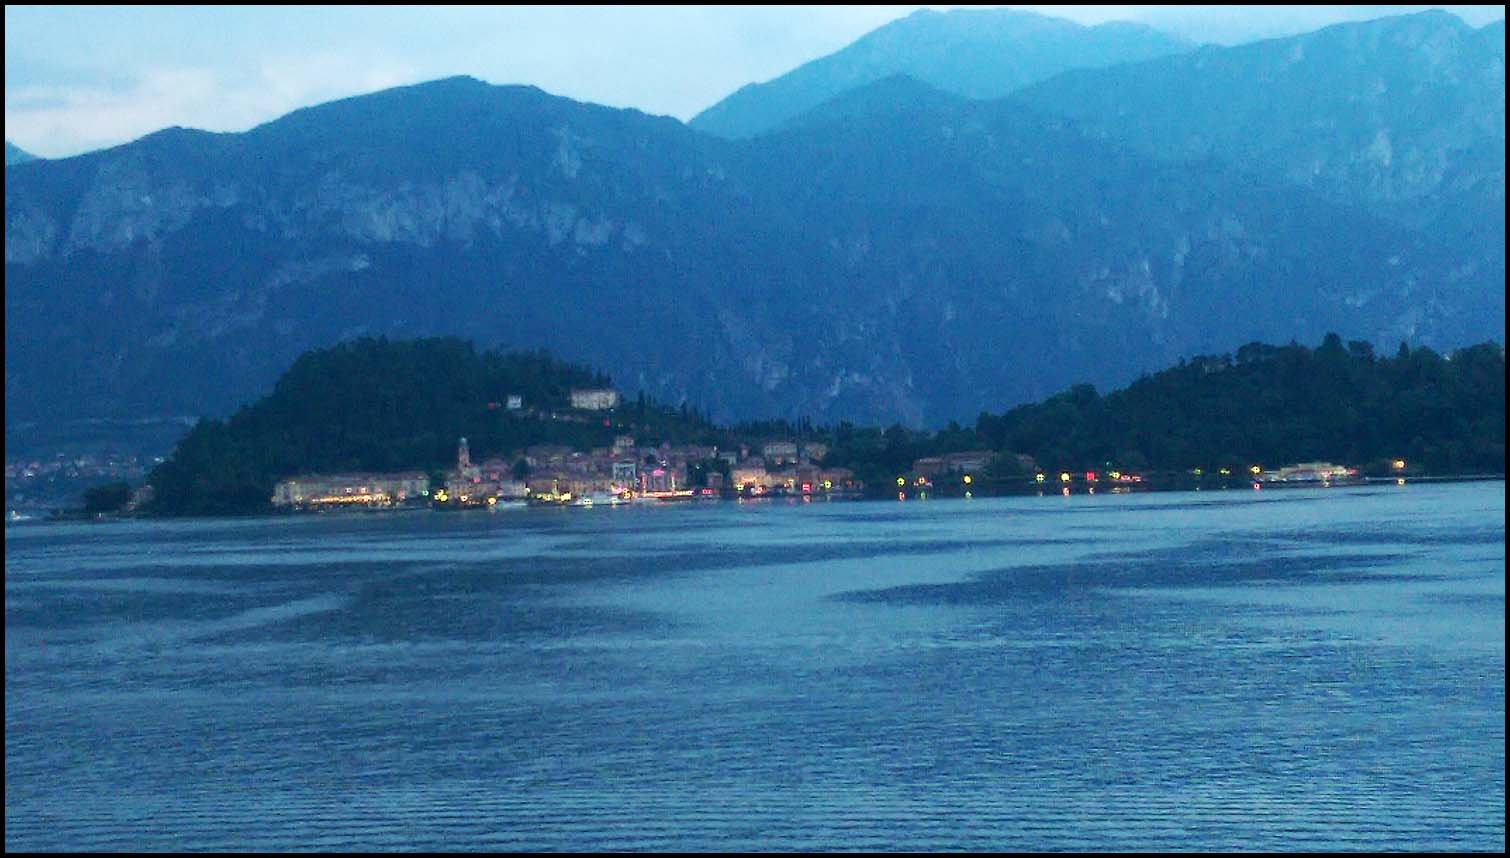 View of the lake from Cadenabbia, Lake Como